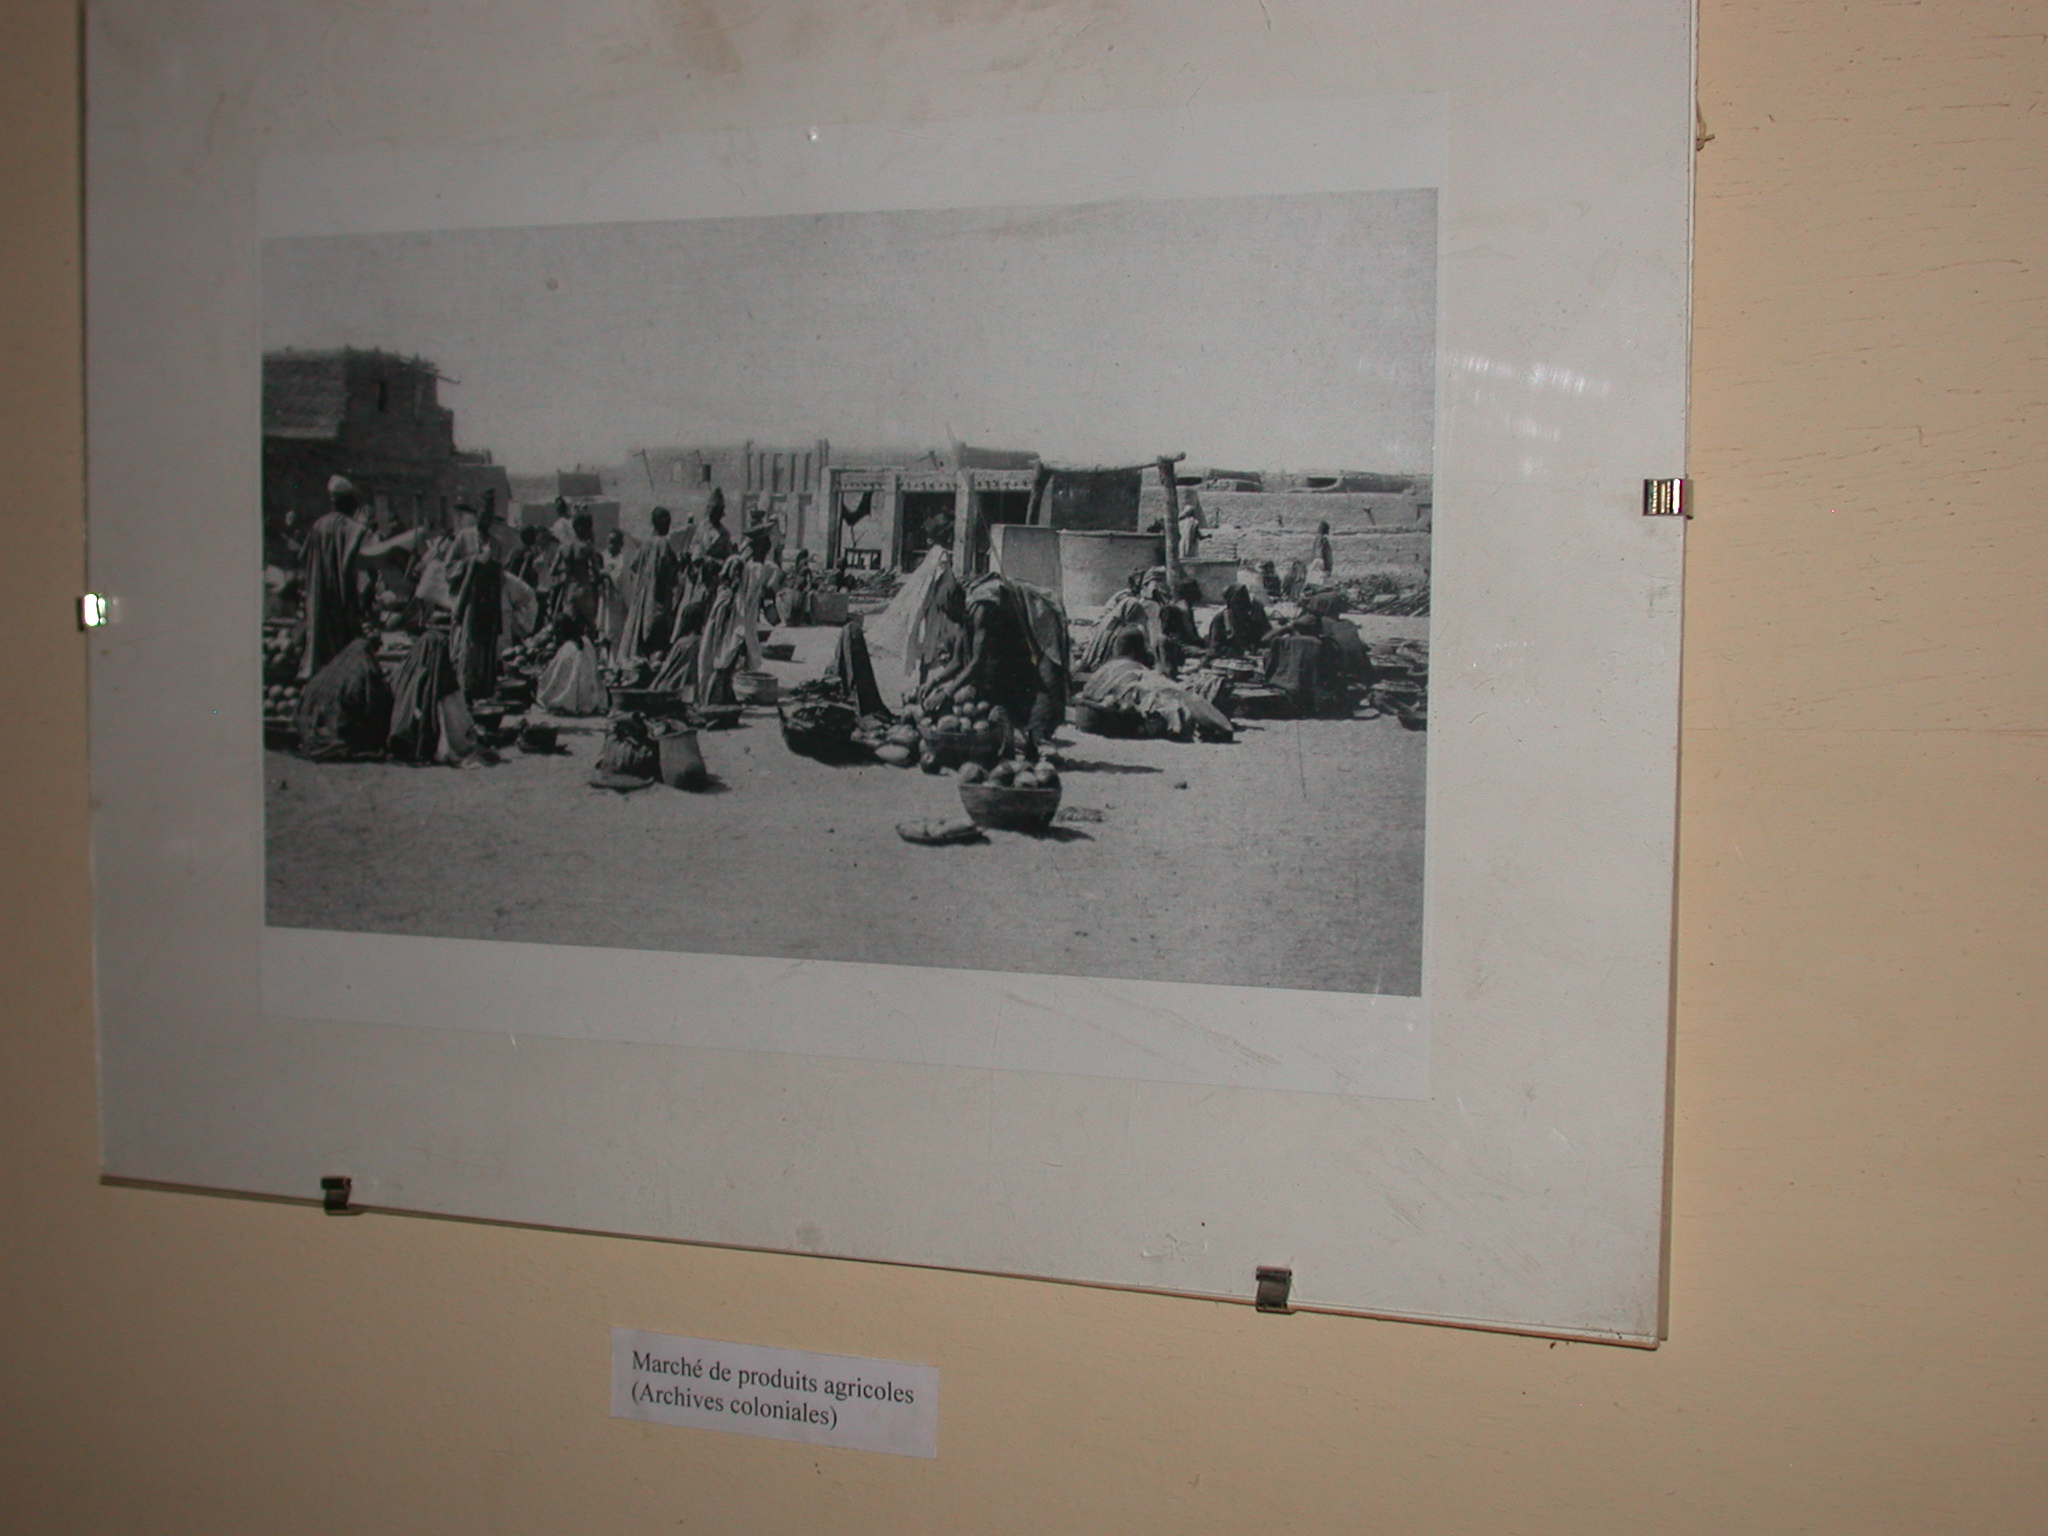 Photo of Market for Agricultural Products, Timbuktu Ethnological Museum, Timbuktu, Mali